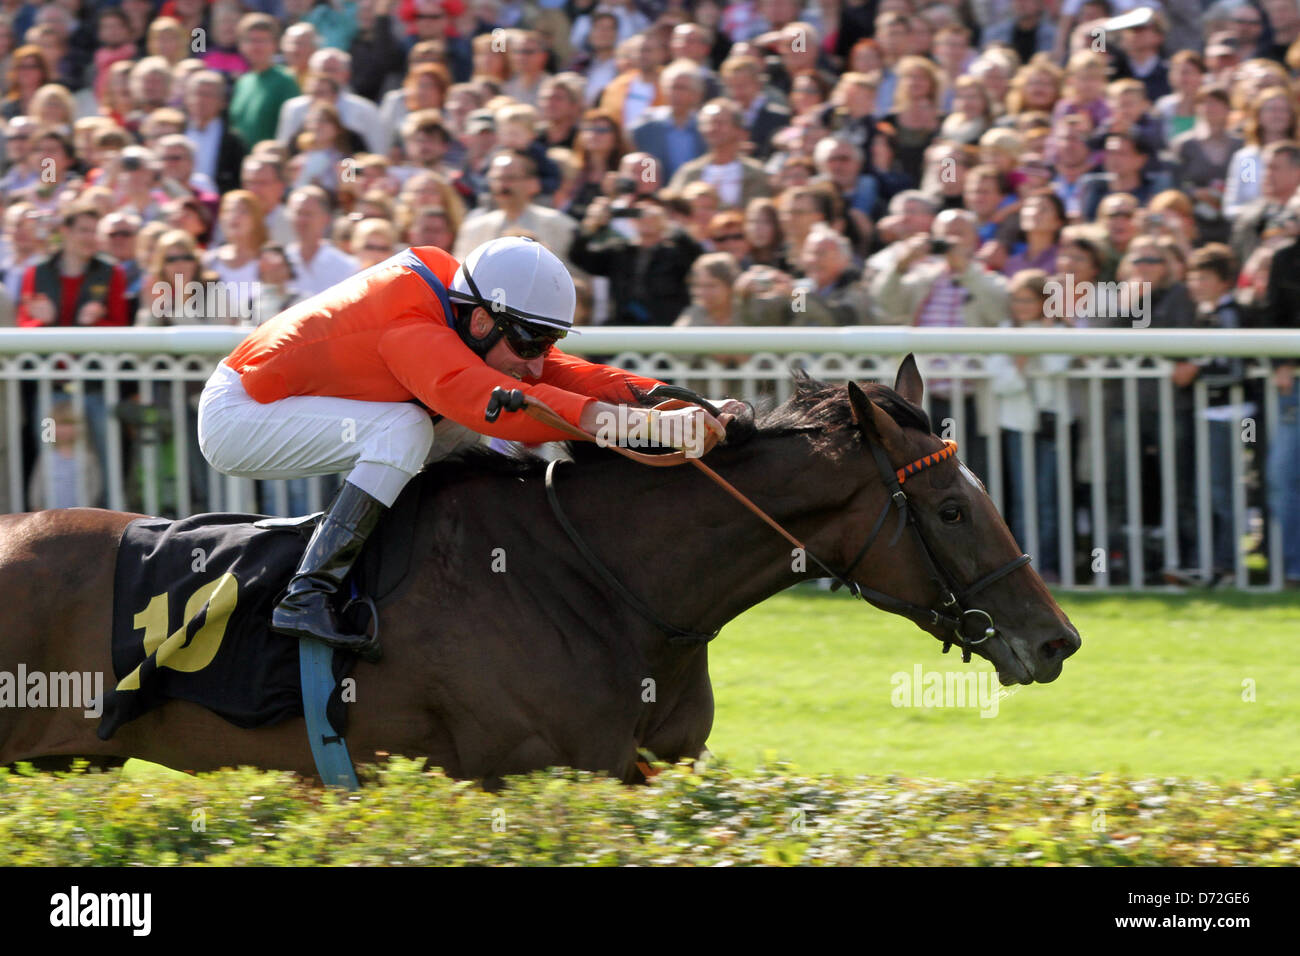 Hoppe Garden, Danedream with Andrasch Starke wins the Grand Prix of Berlin - Stock Image